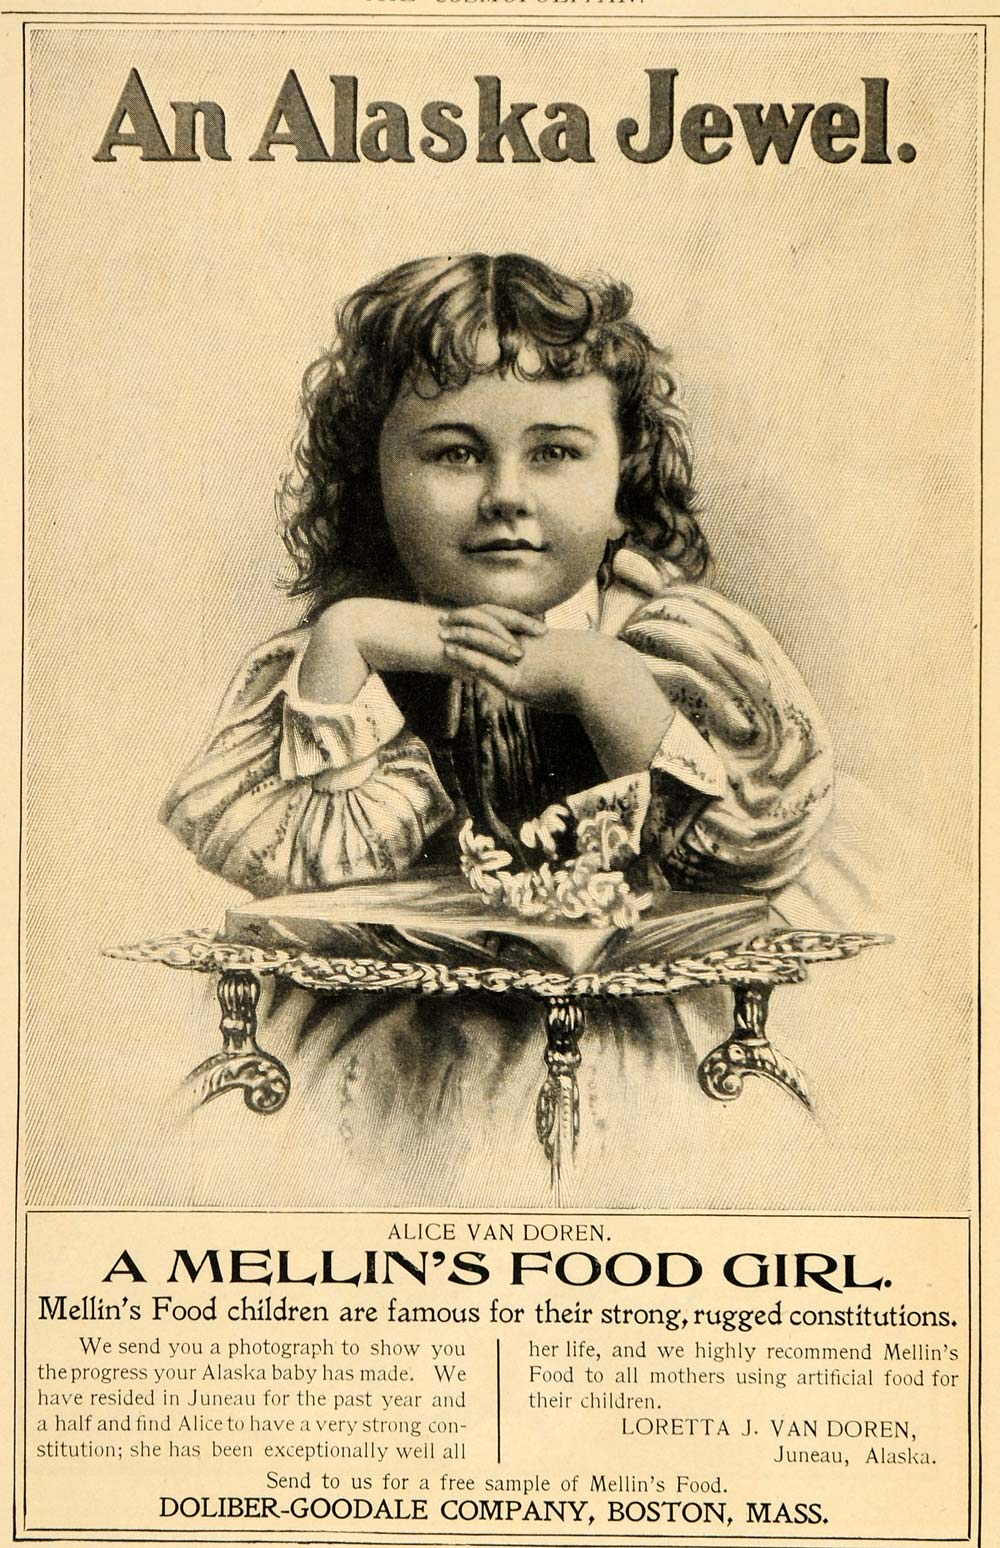 1898 Ad Mellins Food Girl Alice Van Doren Juneau Alaska - ORIGINAL OLD5